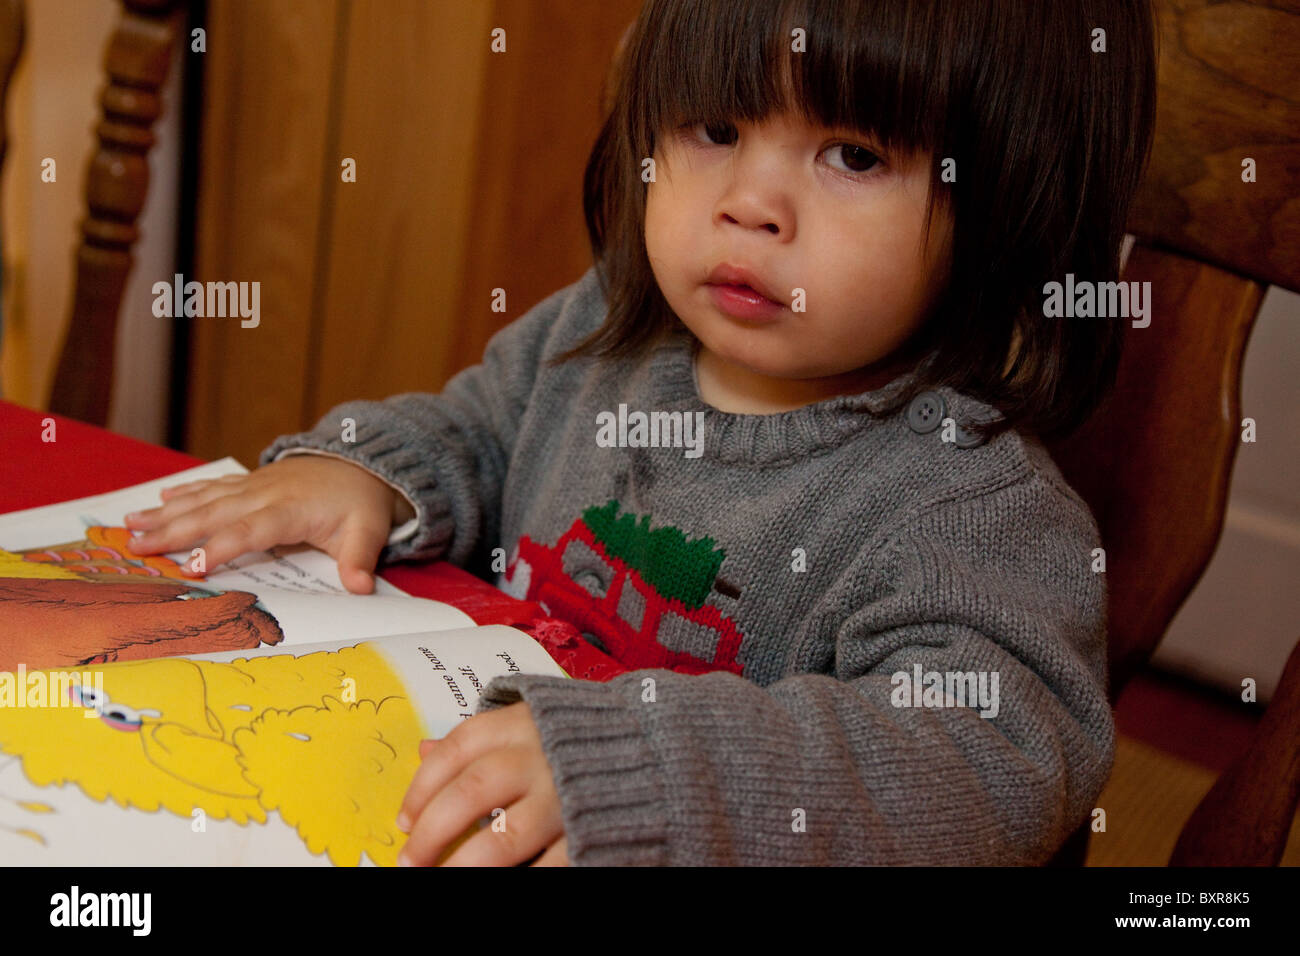 a two-year-old filipino/white boy looks at a sesame street book at